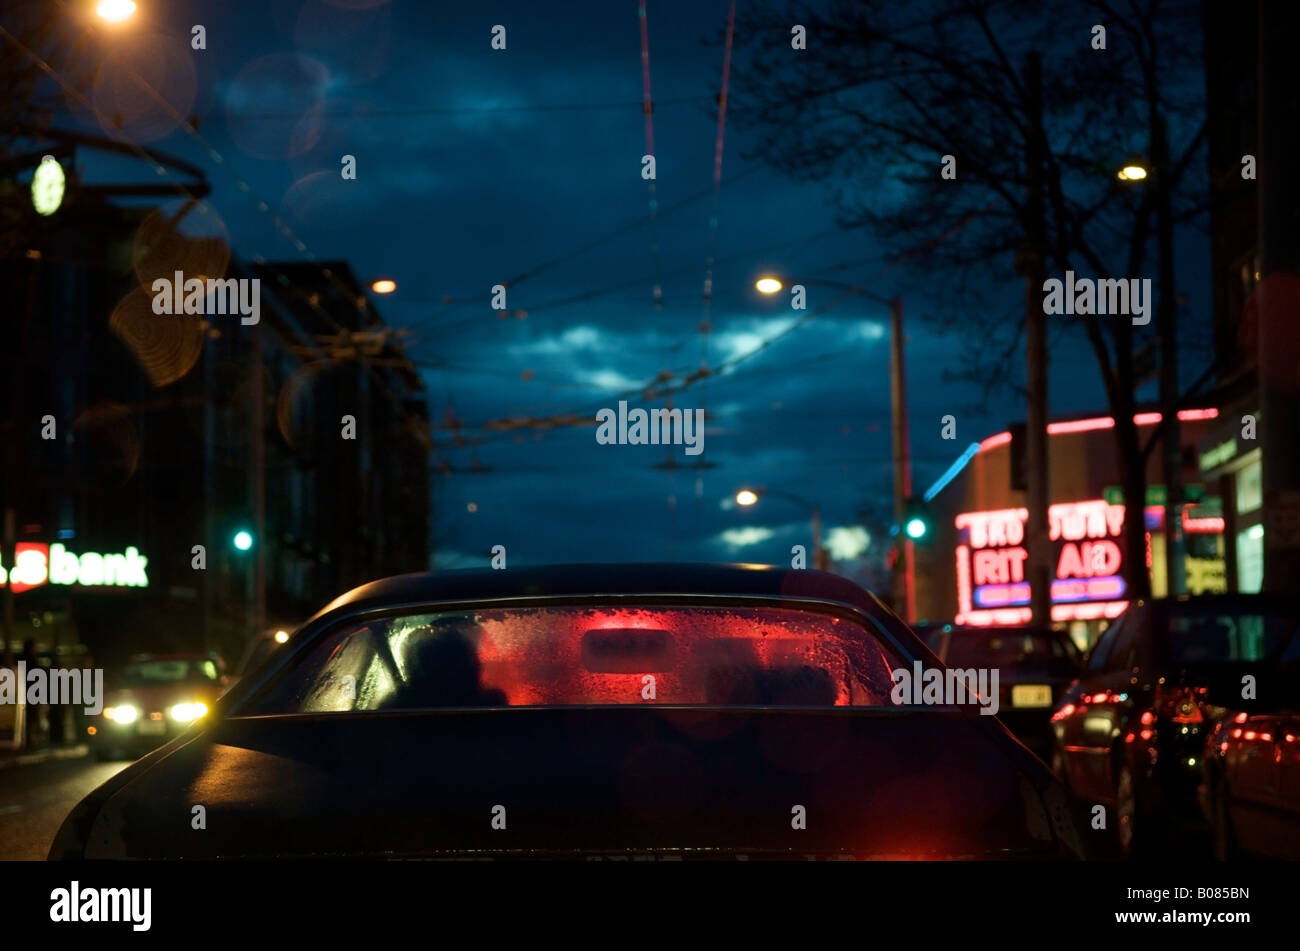 View of red brake lights through the rear window of a car on a rainy evening in Seattle, WA, USA. - Stock Image